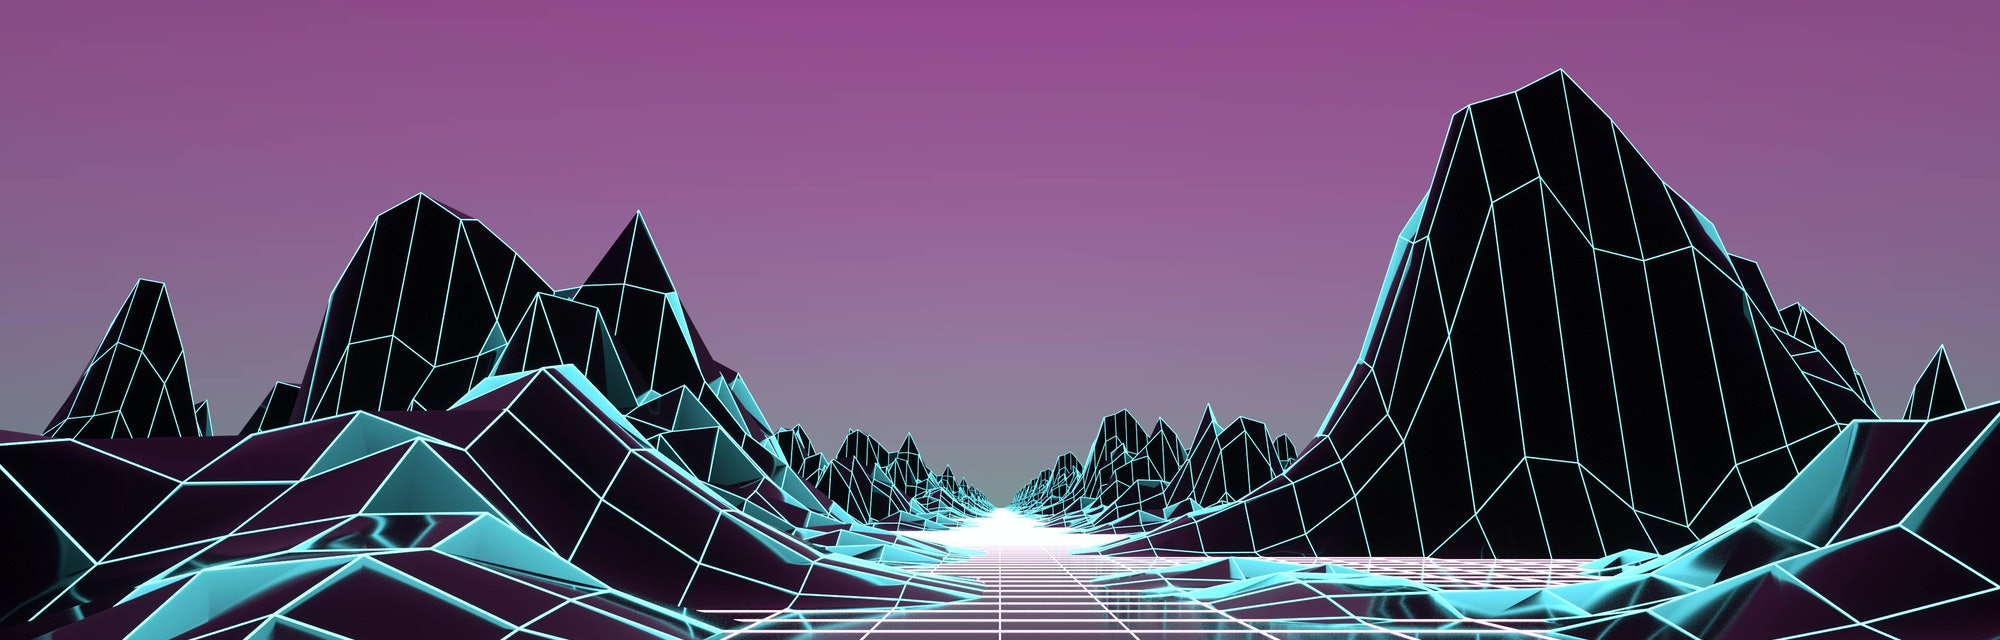 Retro Futurism Background 1980s style. 3d illustration.